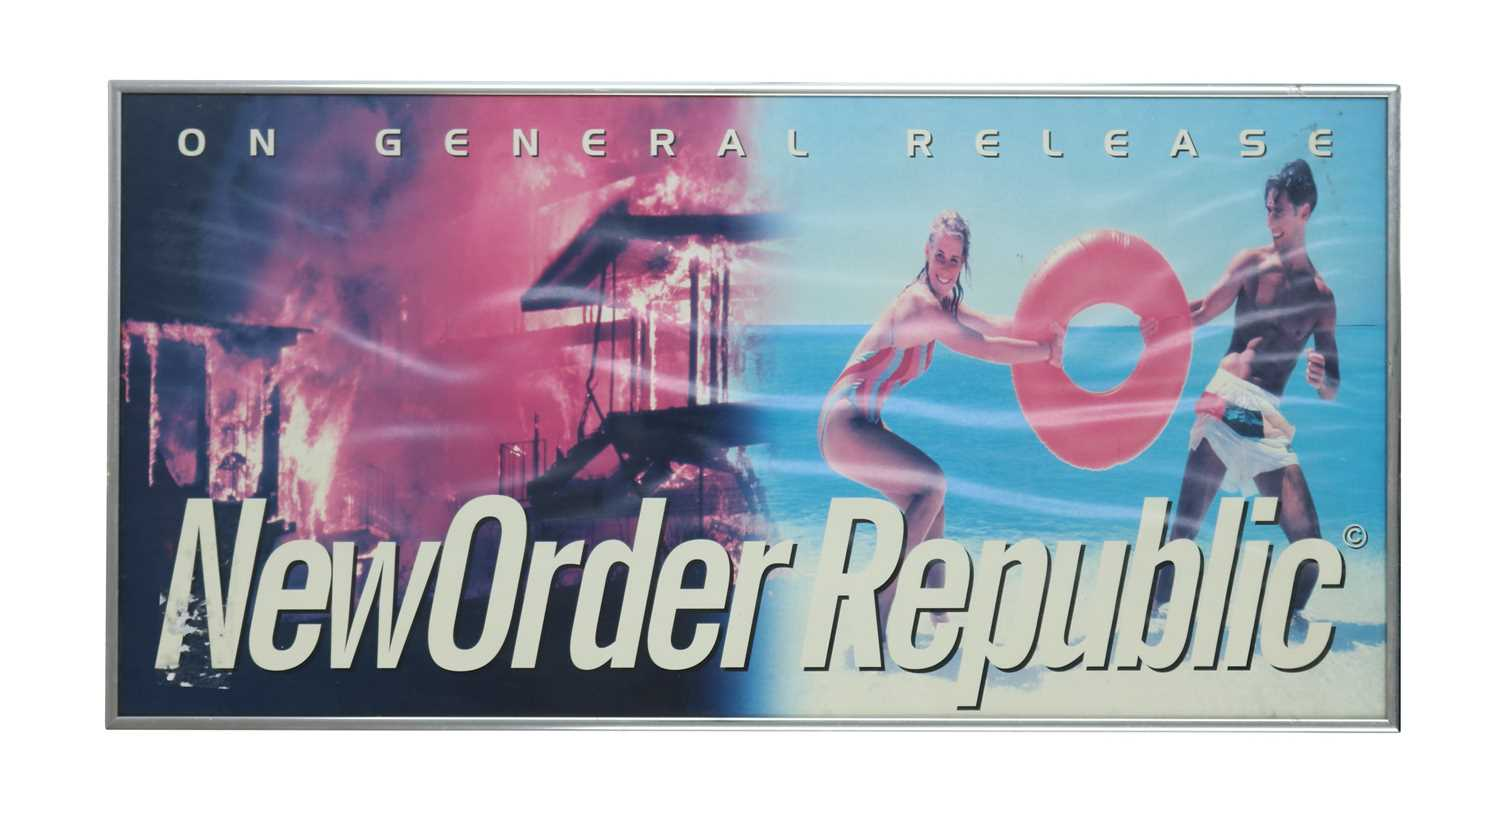 Lot 34 - NEW ORDER LONDON RECORDS PROMO POSTER GIFT